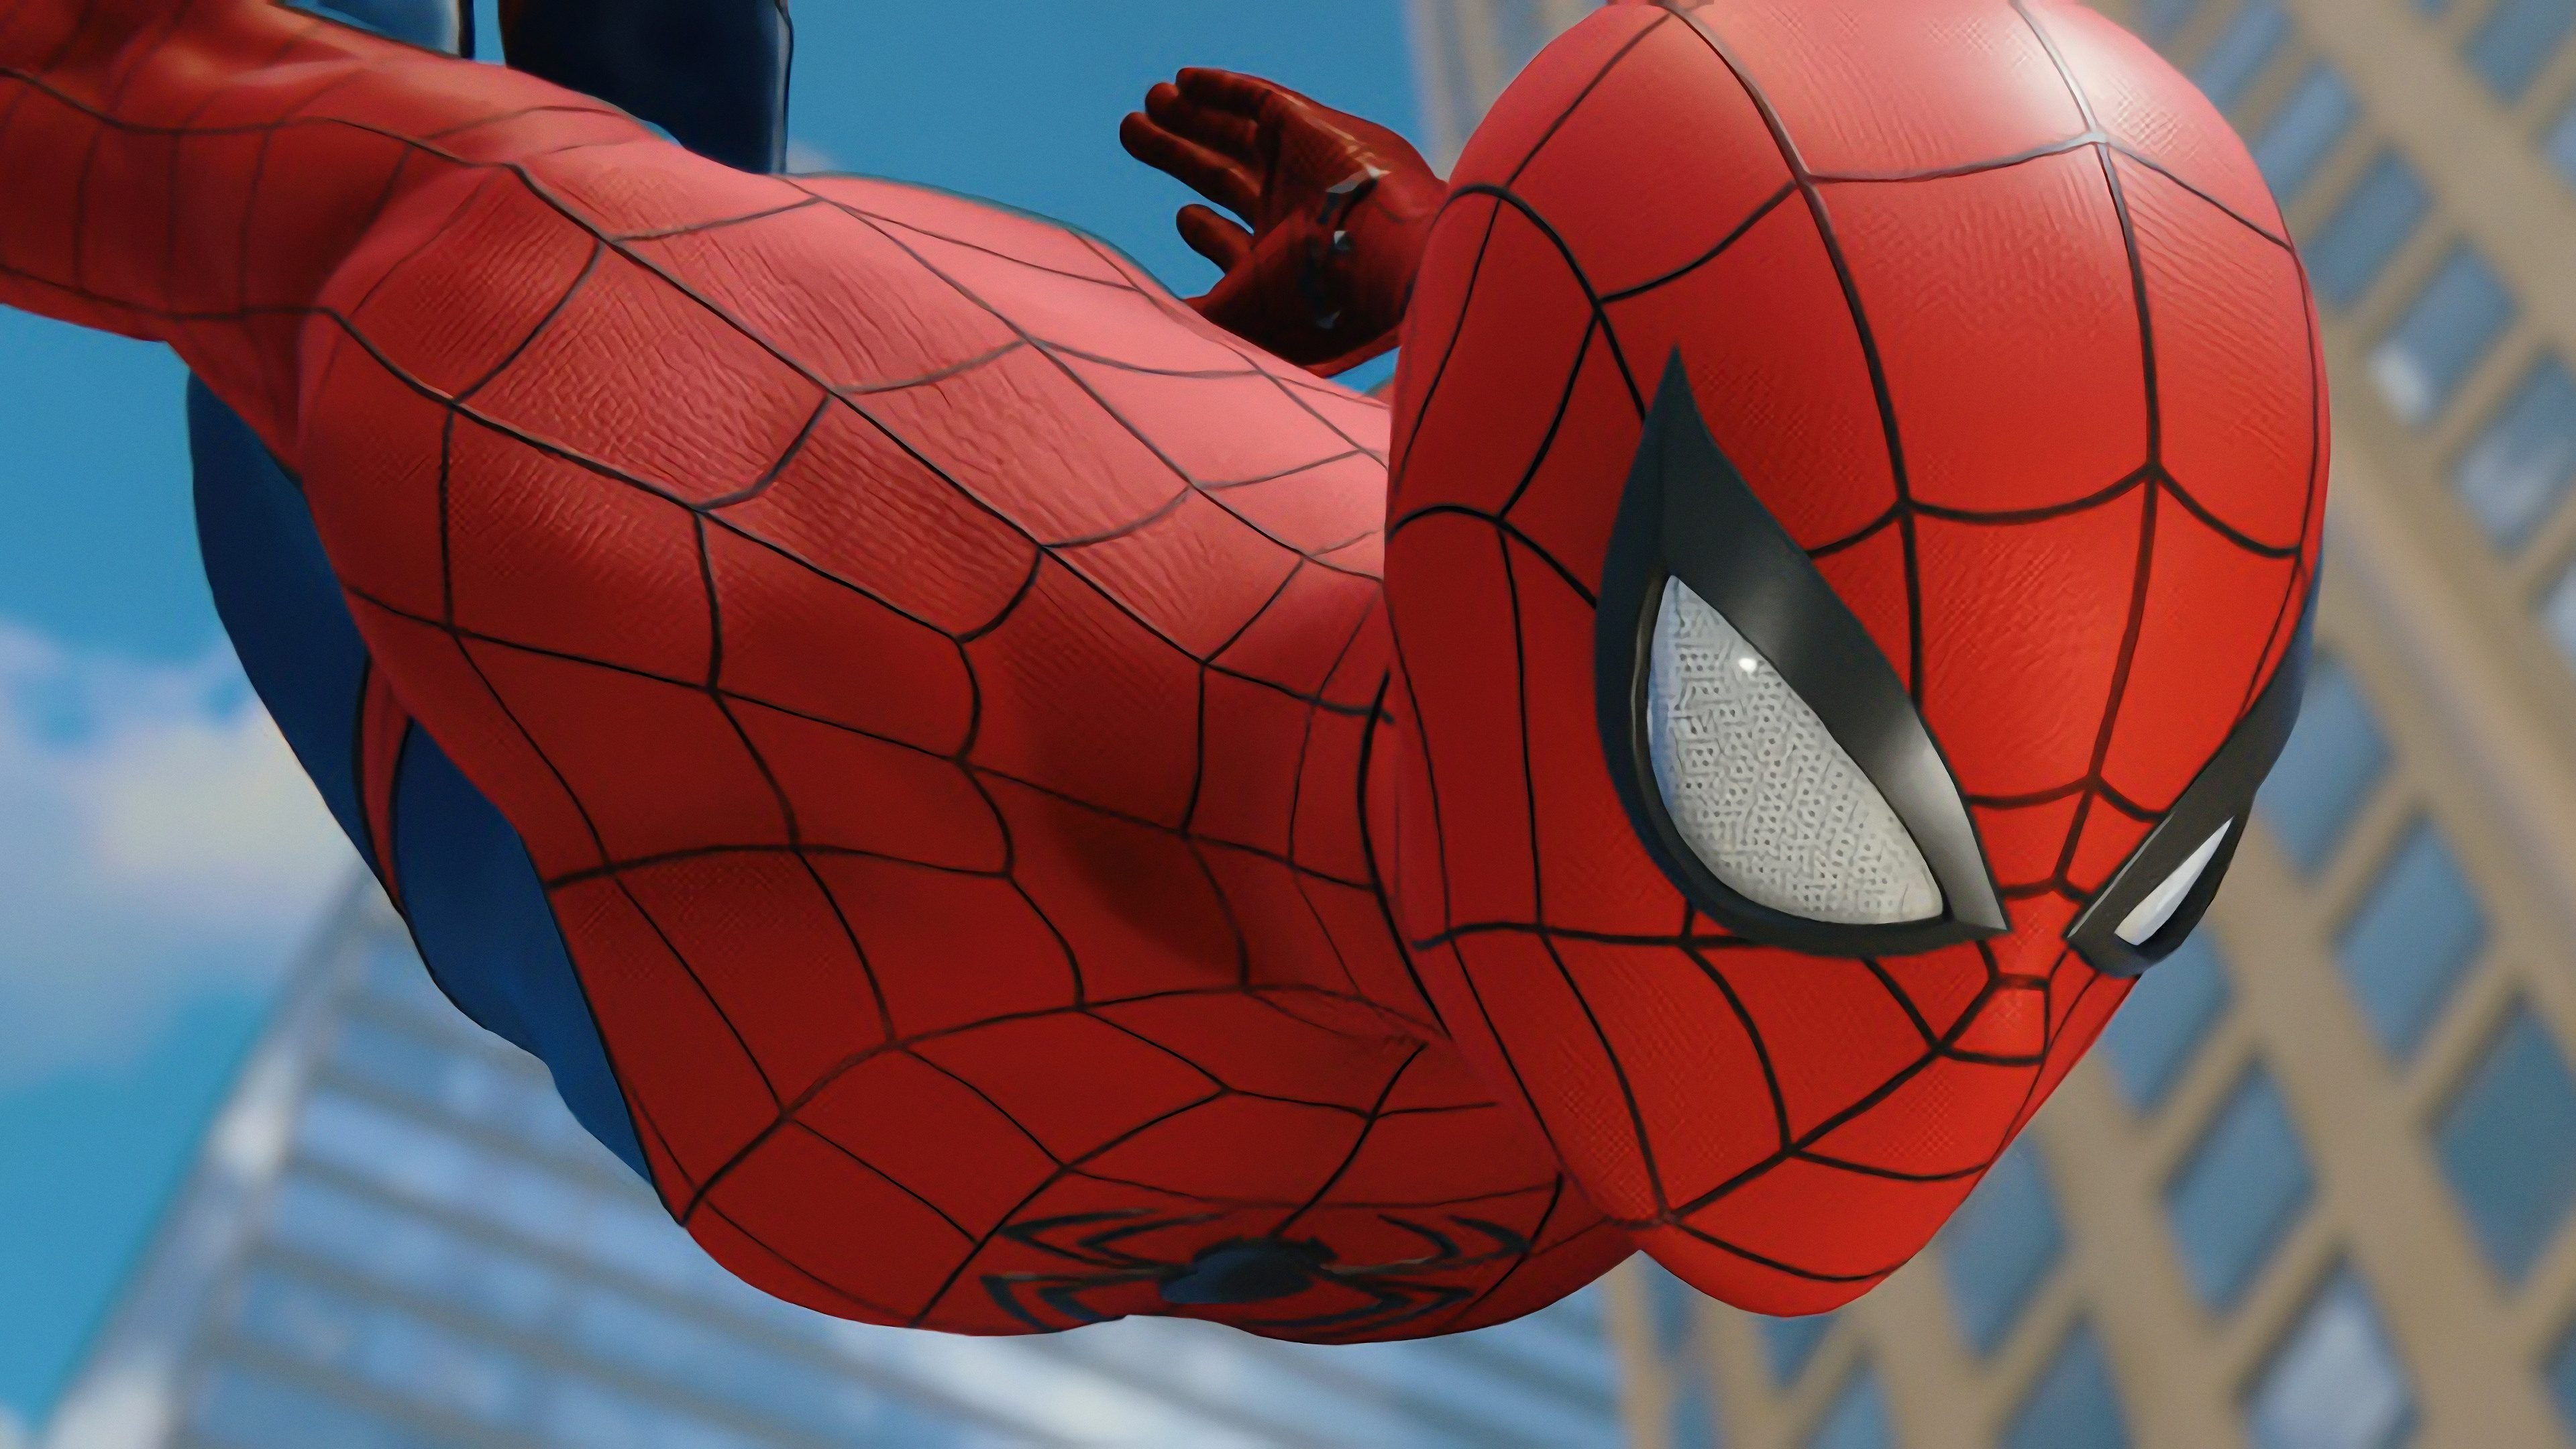 Spiderman 4k Game Hd Games 4k Wallpapers Images Backgrounds